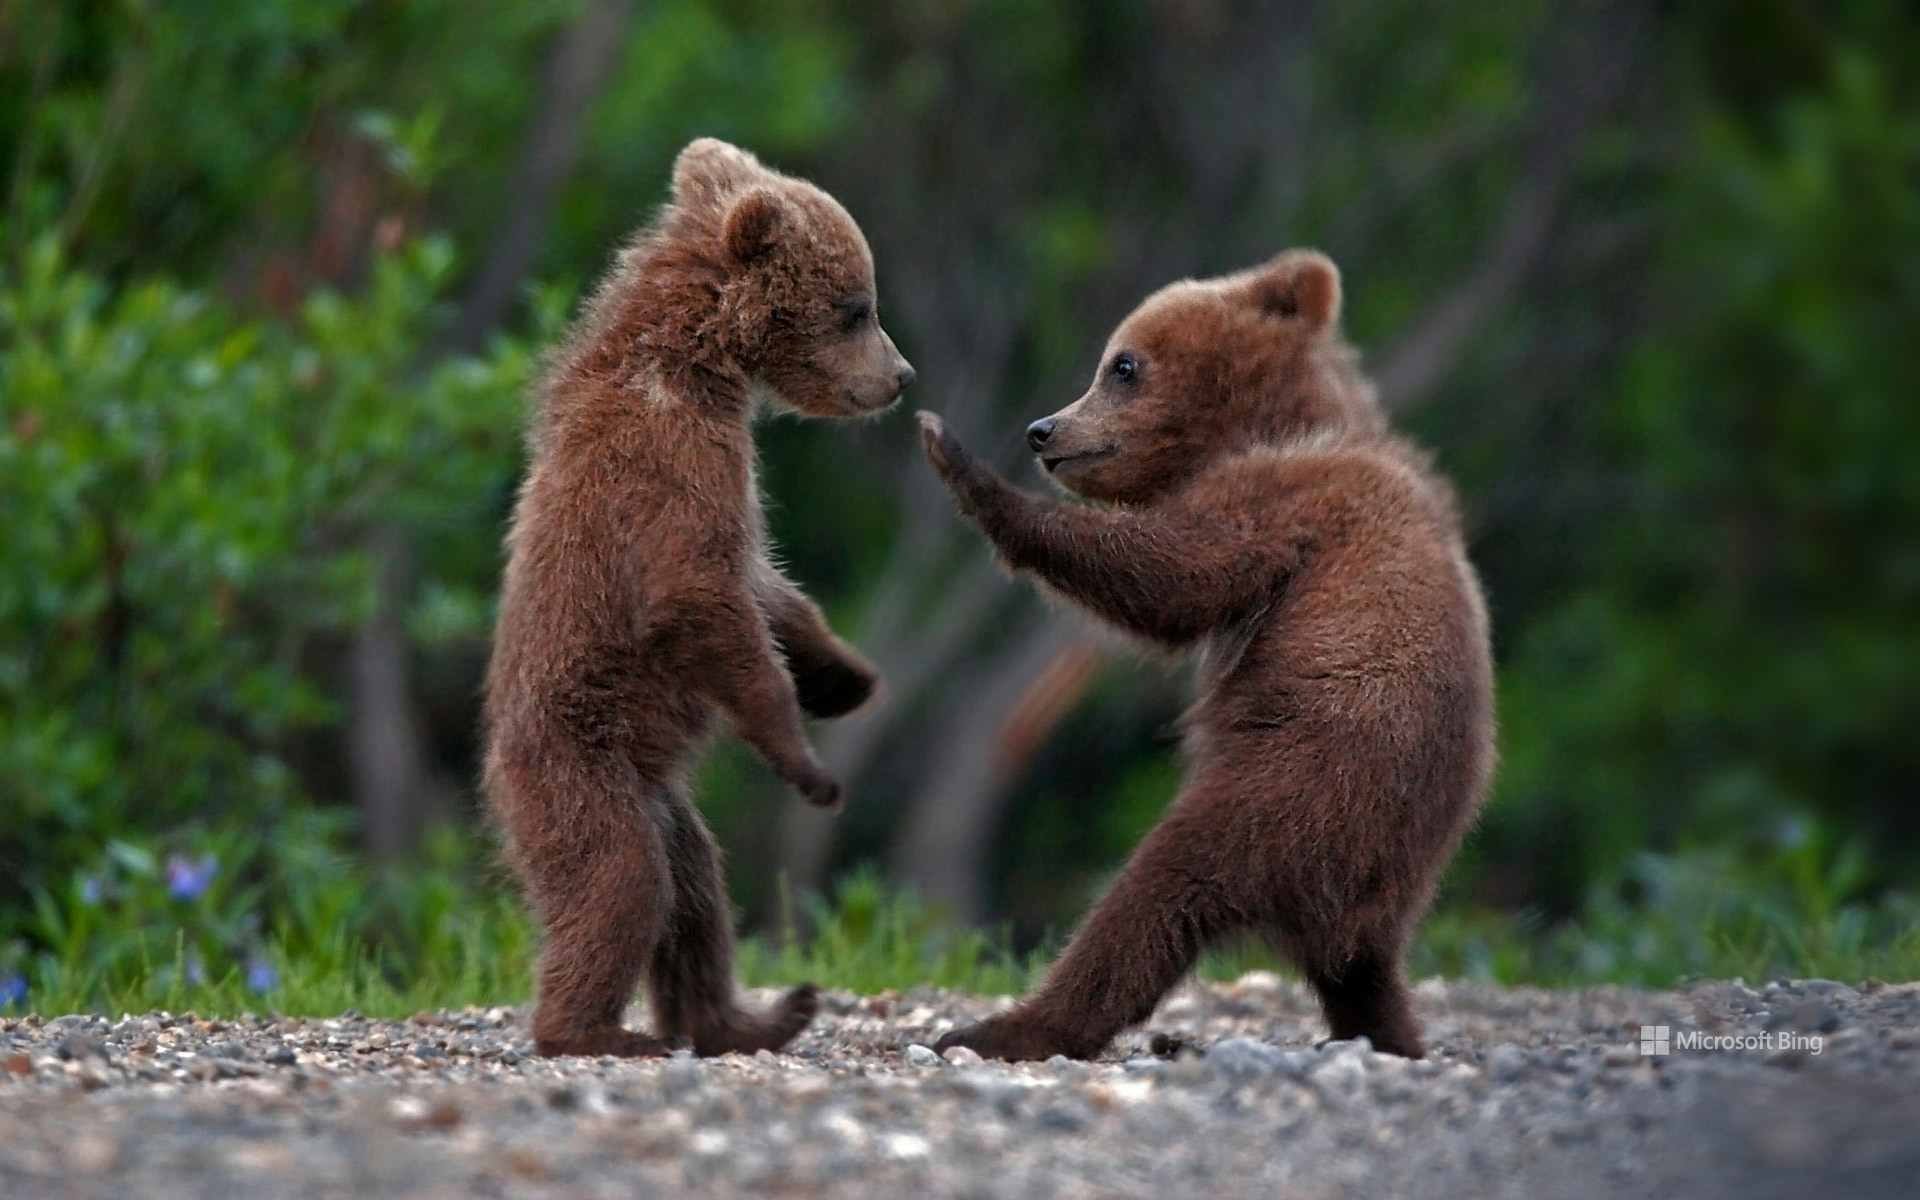 Grizzly bear cubs in Denali National Park, Alaska, USA